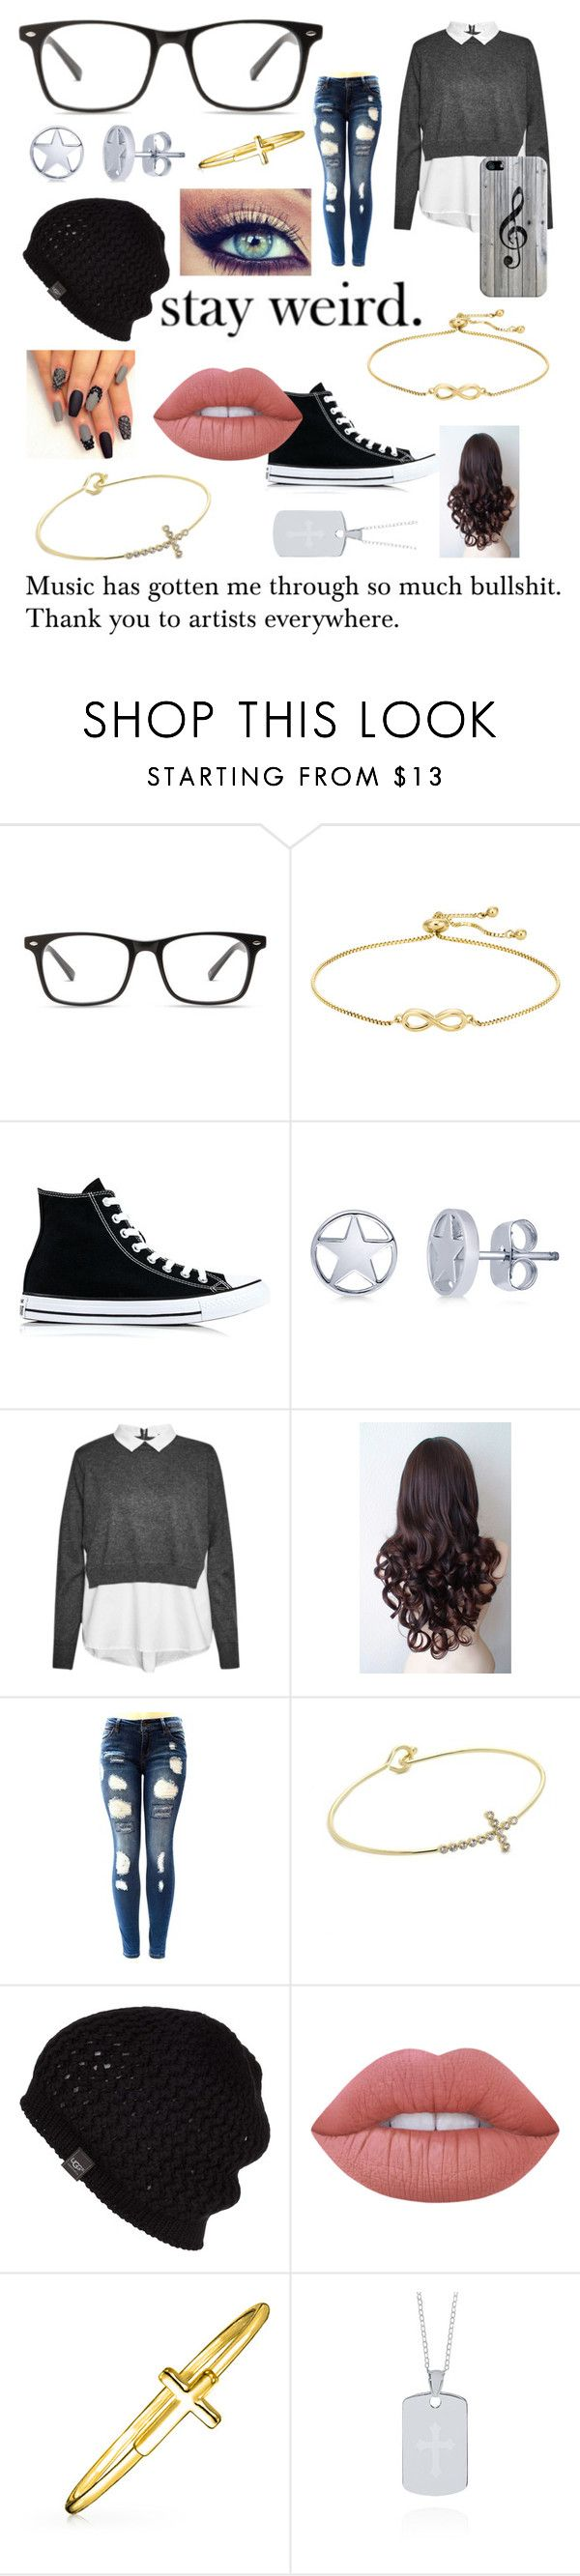 """""""'What Makes You Beautiful'"""" by caketime ❤ liked on Polyvore featuring Converse, BERRICLE, French Connection, New Directions, UGG Australia, Lime Crime, Bling Jewelry, Belk & Co. and Casetify"""